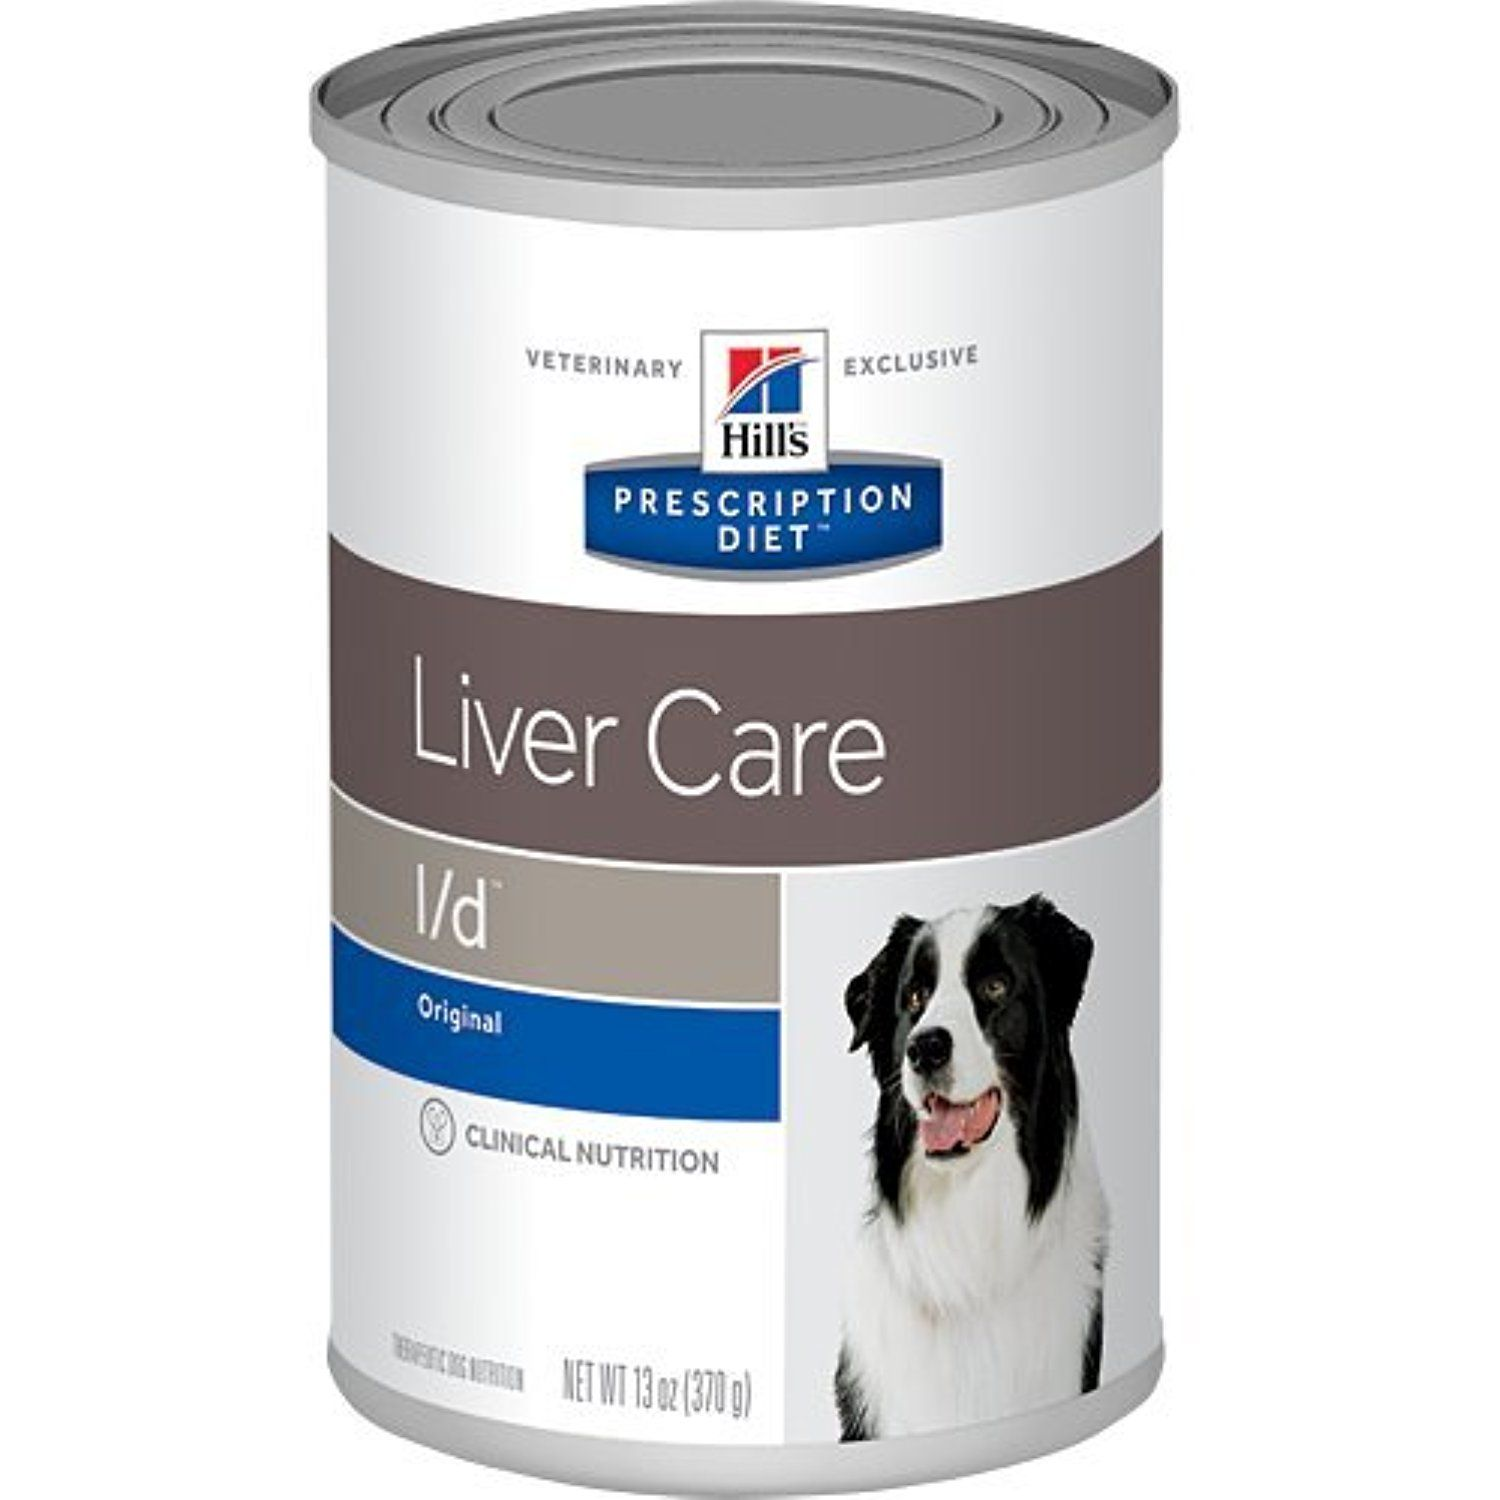 Hill's Prescription Diet l/d Liver Care Original Canned